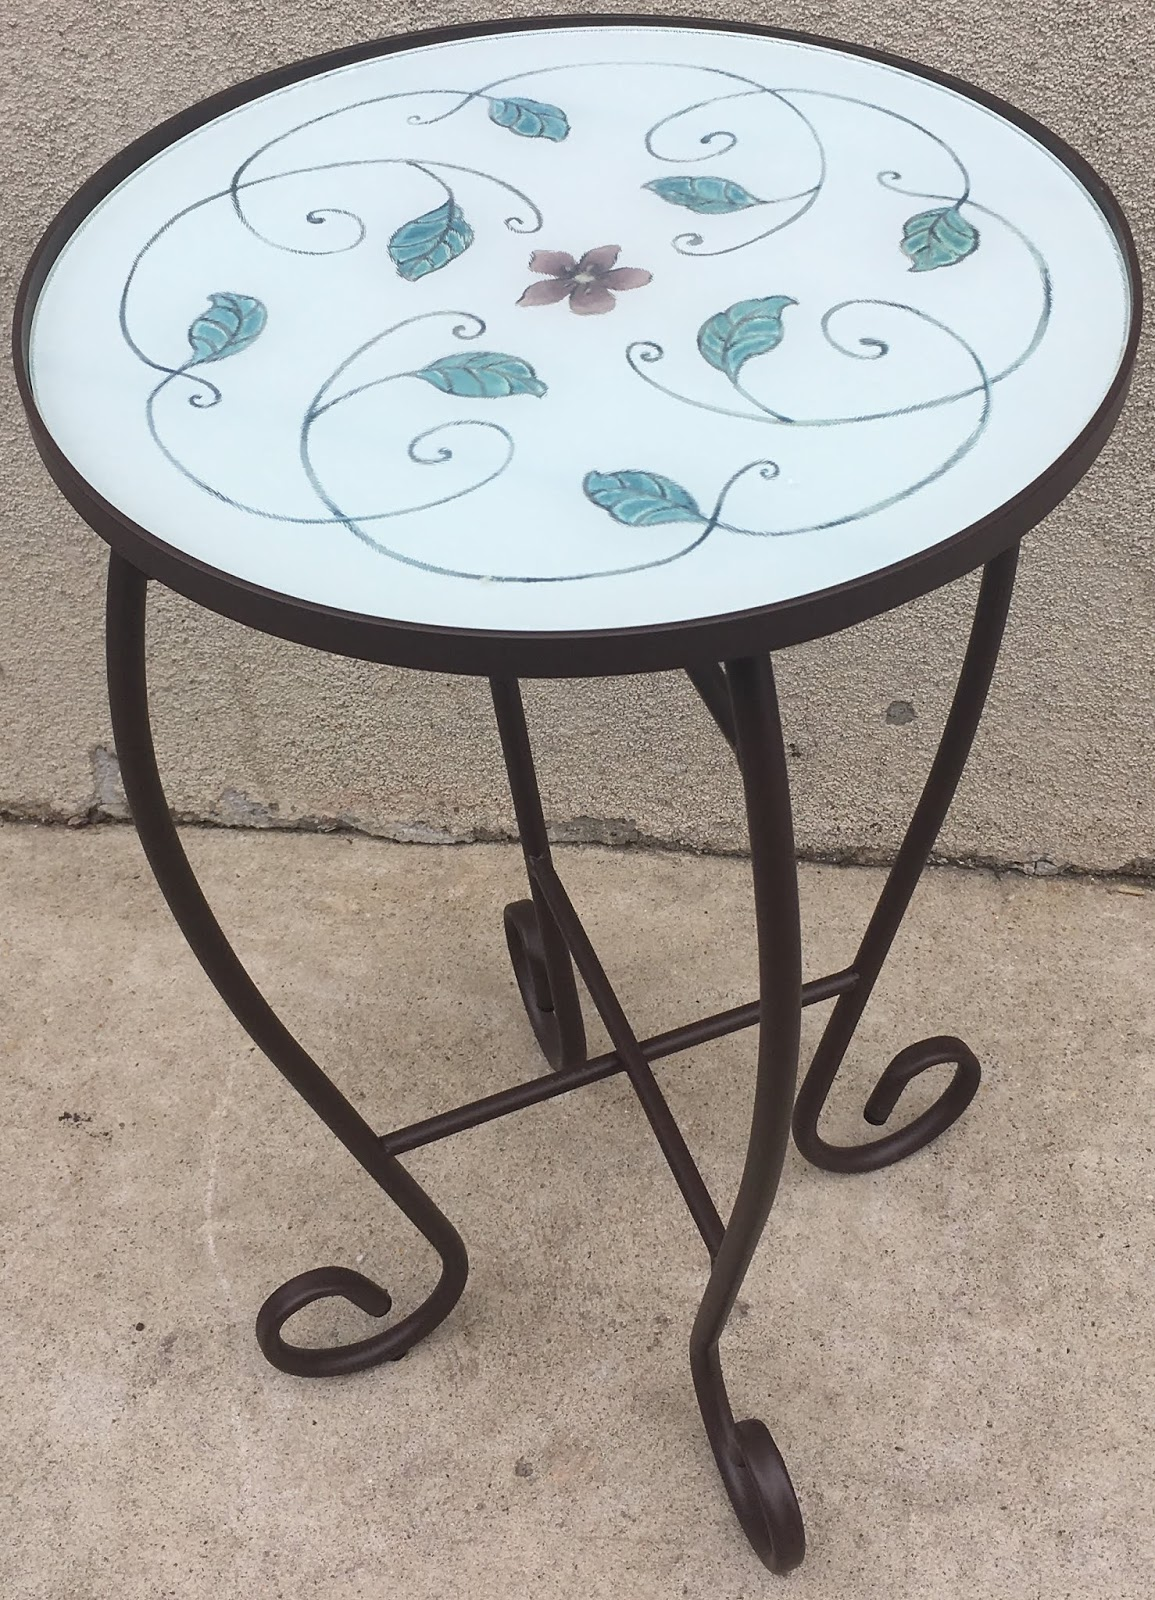 Small Round Glass End Table Uhuru Furniture Collectibles Small Round Metal Glass Top Accent